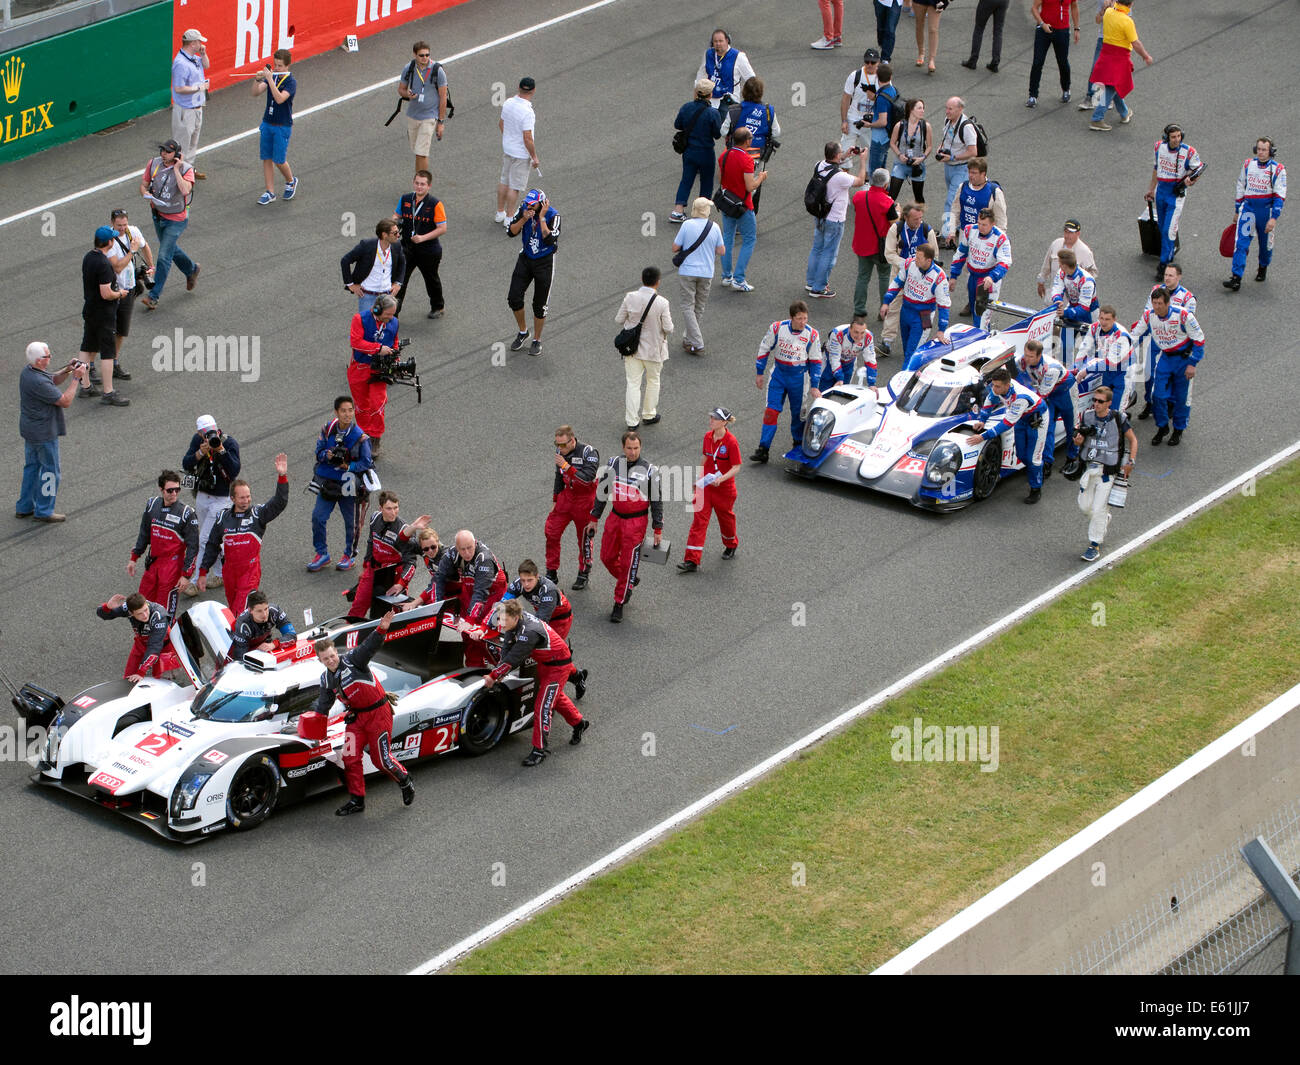 Audi and Toyota Hybrid racing cars on the way to the starting grid 2014 Le Mans - Stock Image